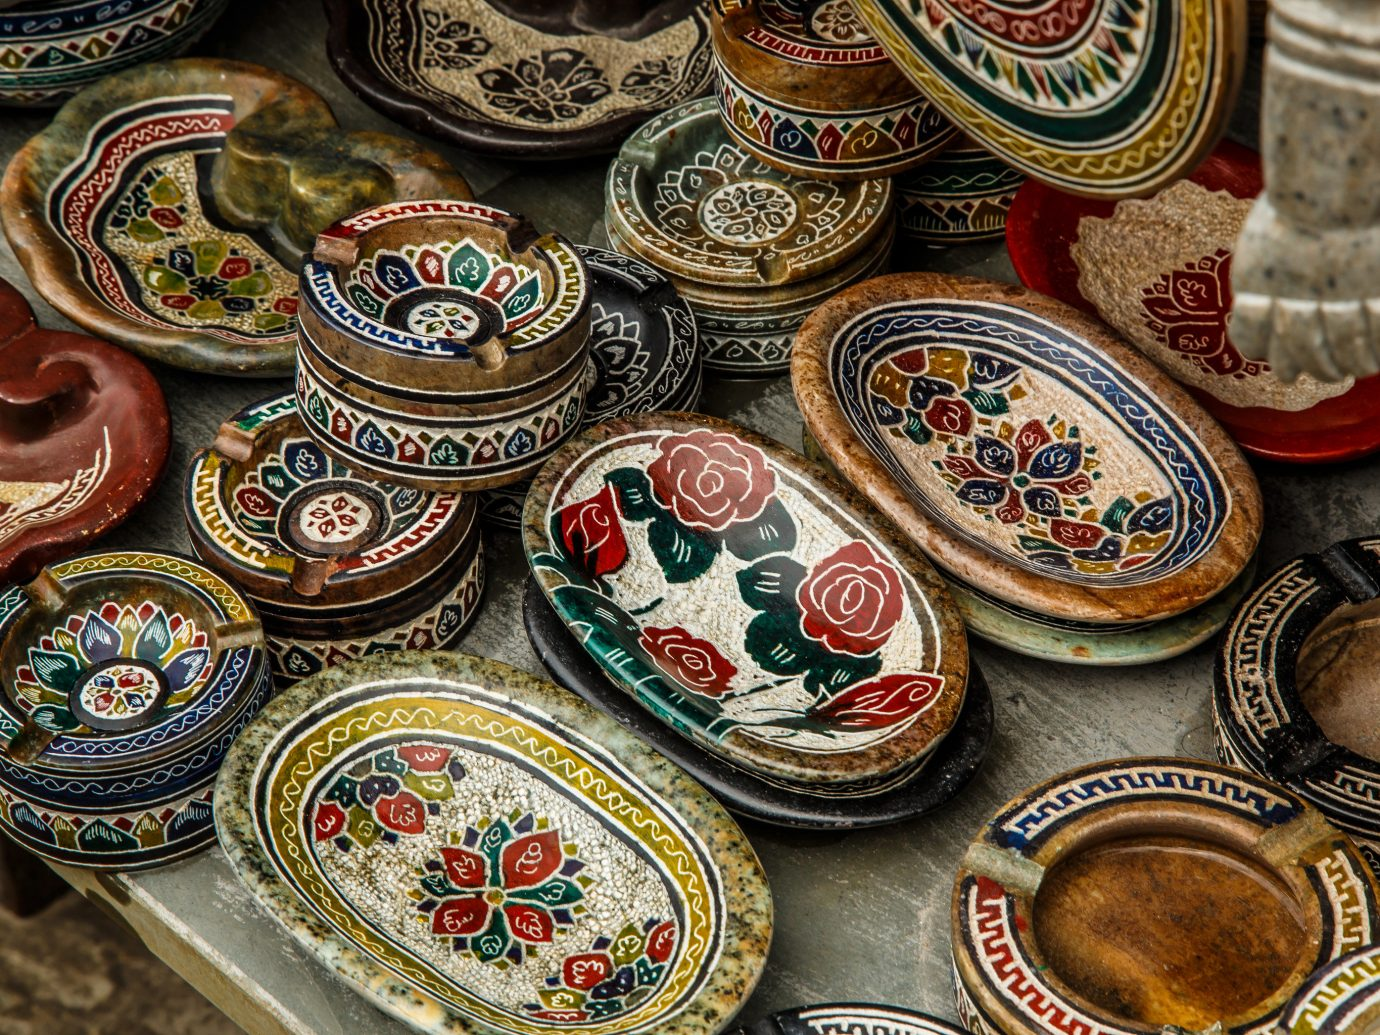 Beaches Brazil Trip Ideas plate art food many ancient history bazaar different tradition decorated displayed several decorative assortment set